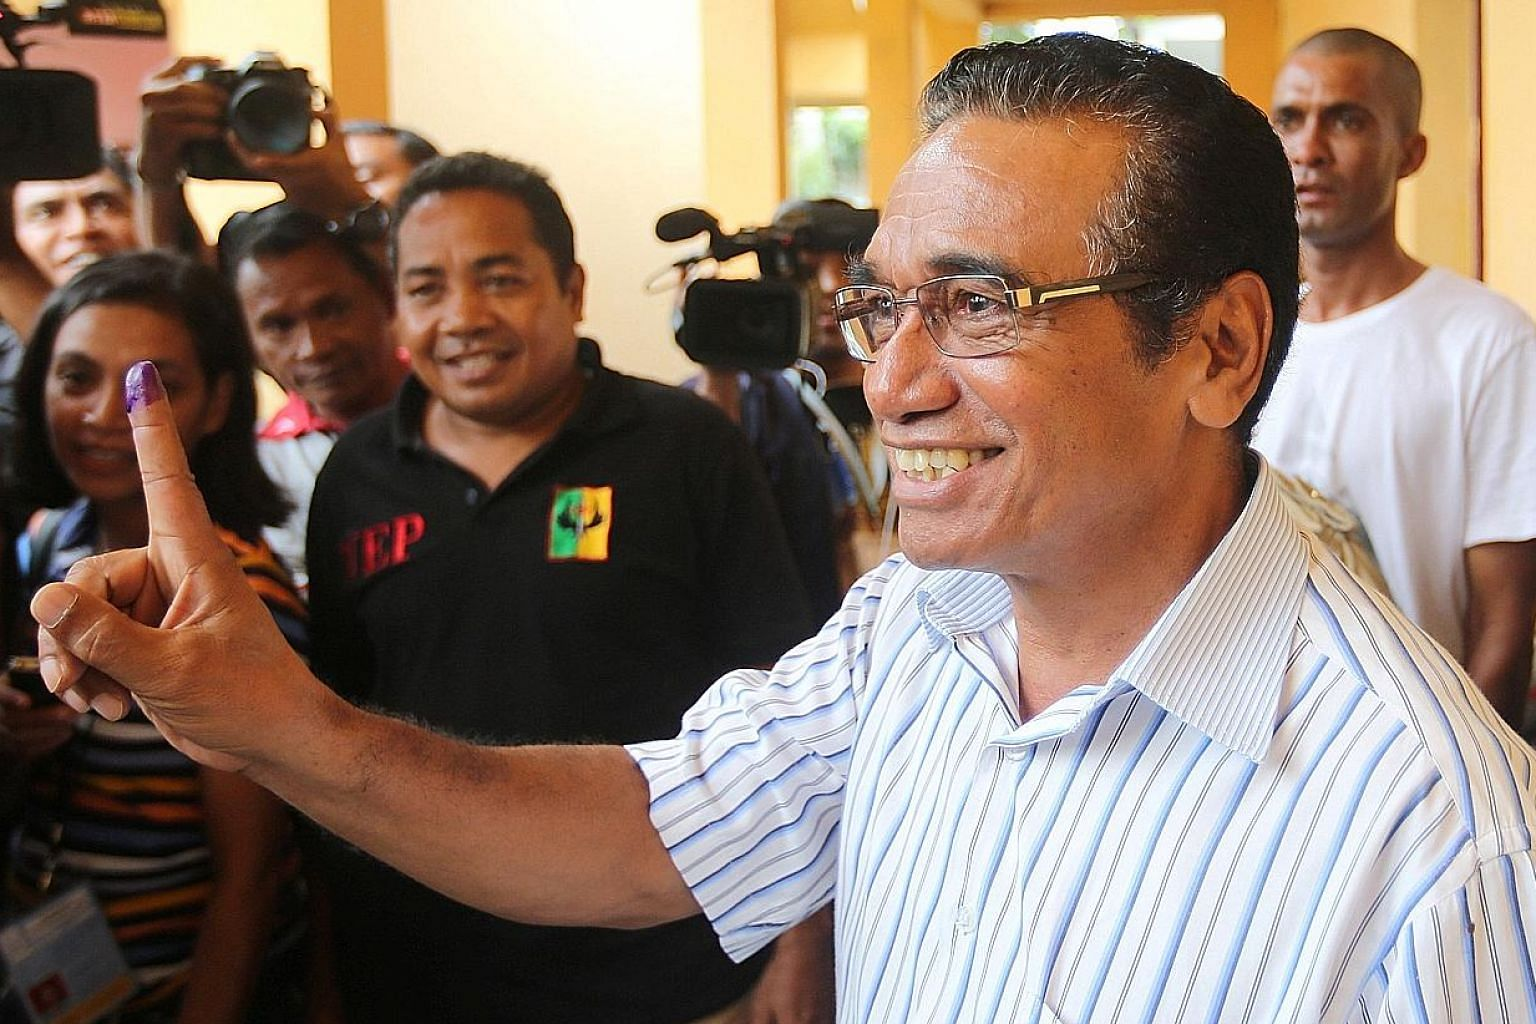 Mr Francisco Guterres with his inked finger after casting his vote on Monday. The Fretilin leader is set to be Timor Leste's president at a challenging time for the tiny half-island nation 15 years after it gained independence.